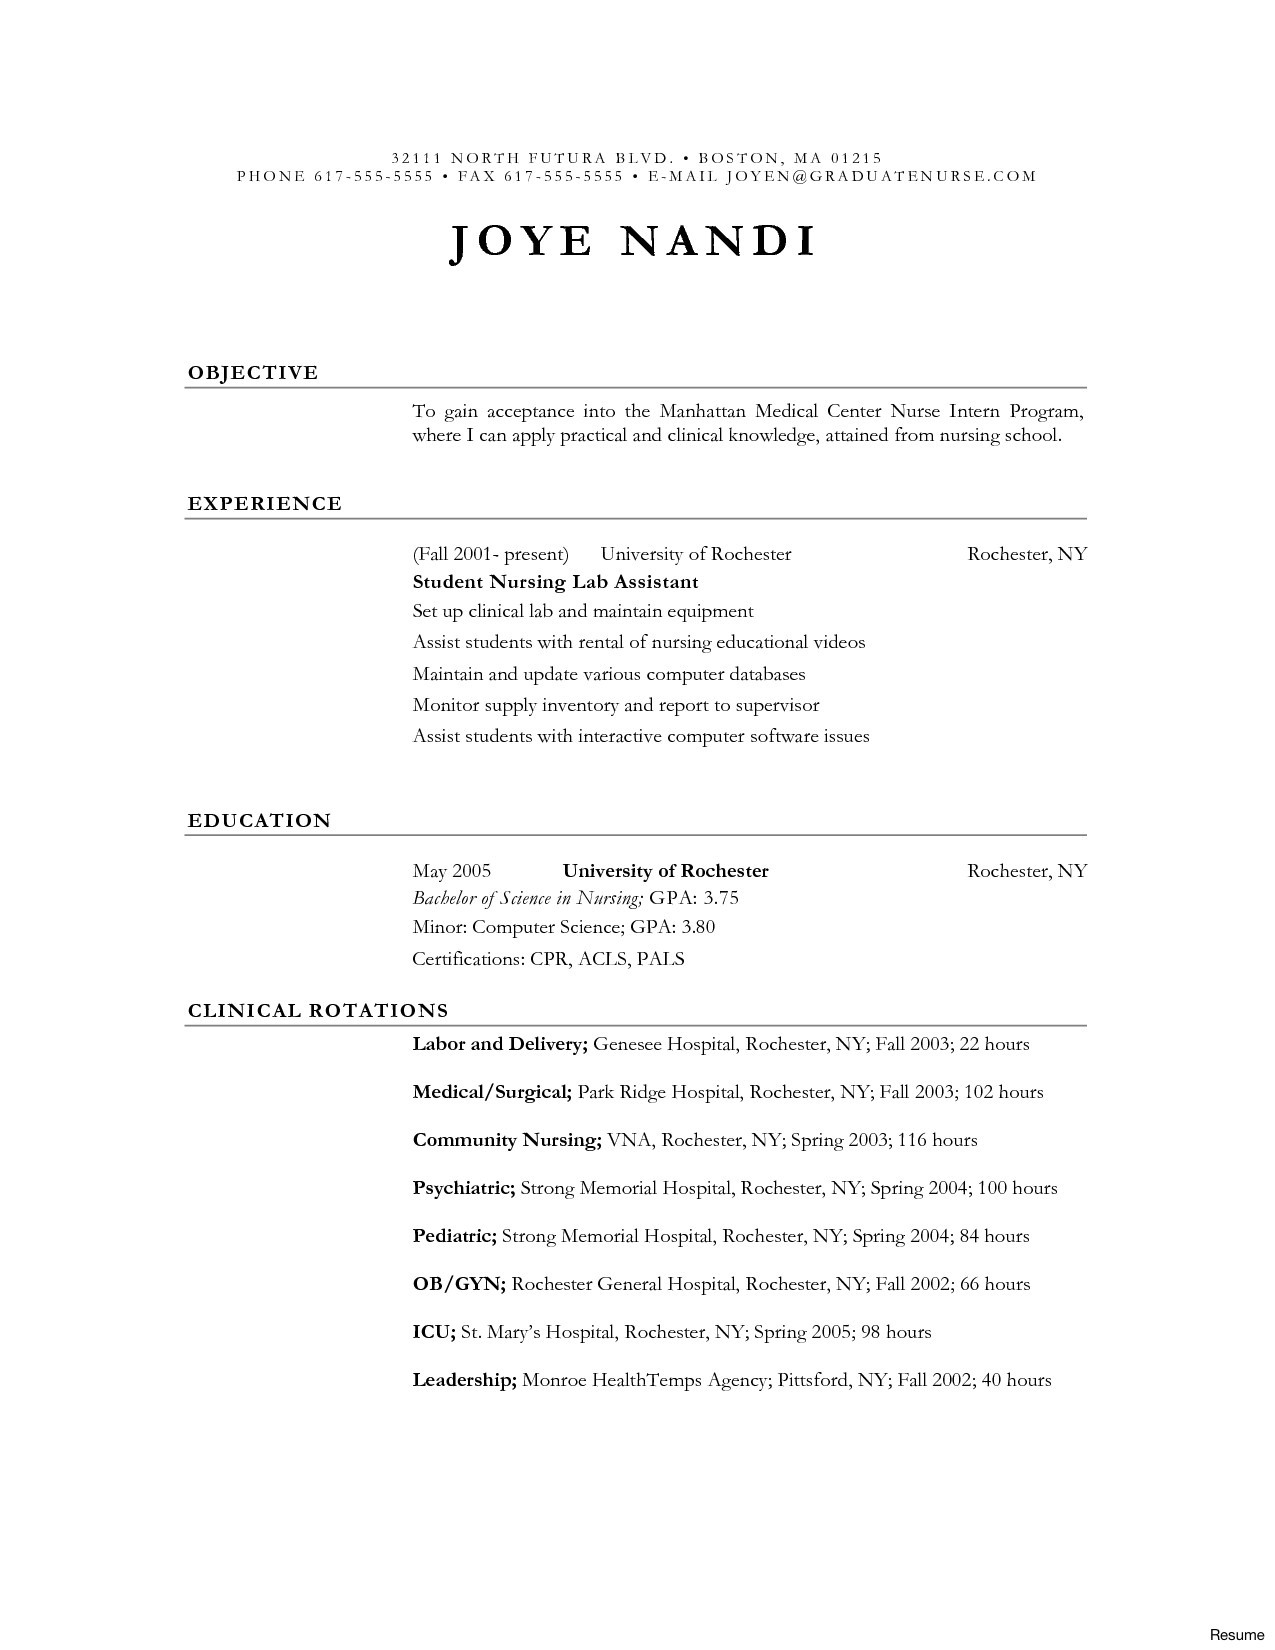 Pharmacy Tech Resume Sample - 25 Inspirational Pharmacy Tech Resume Sample